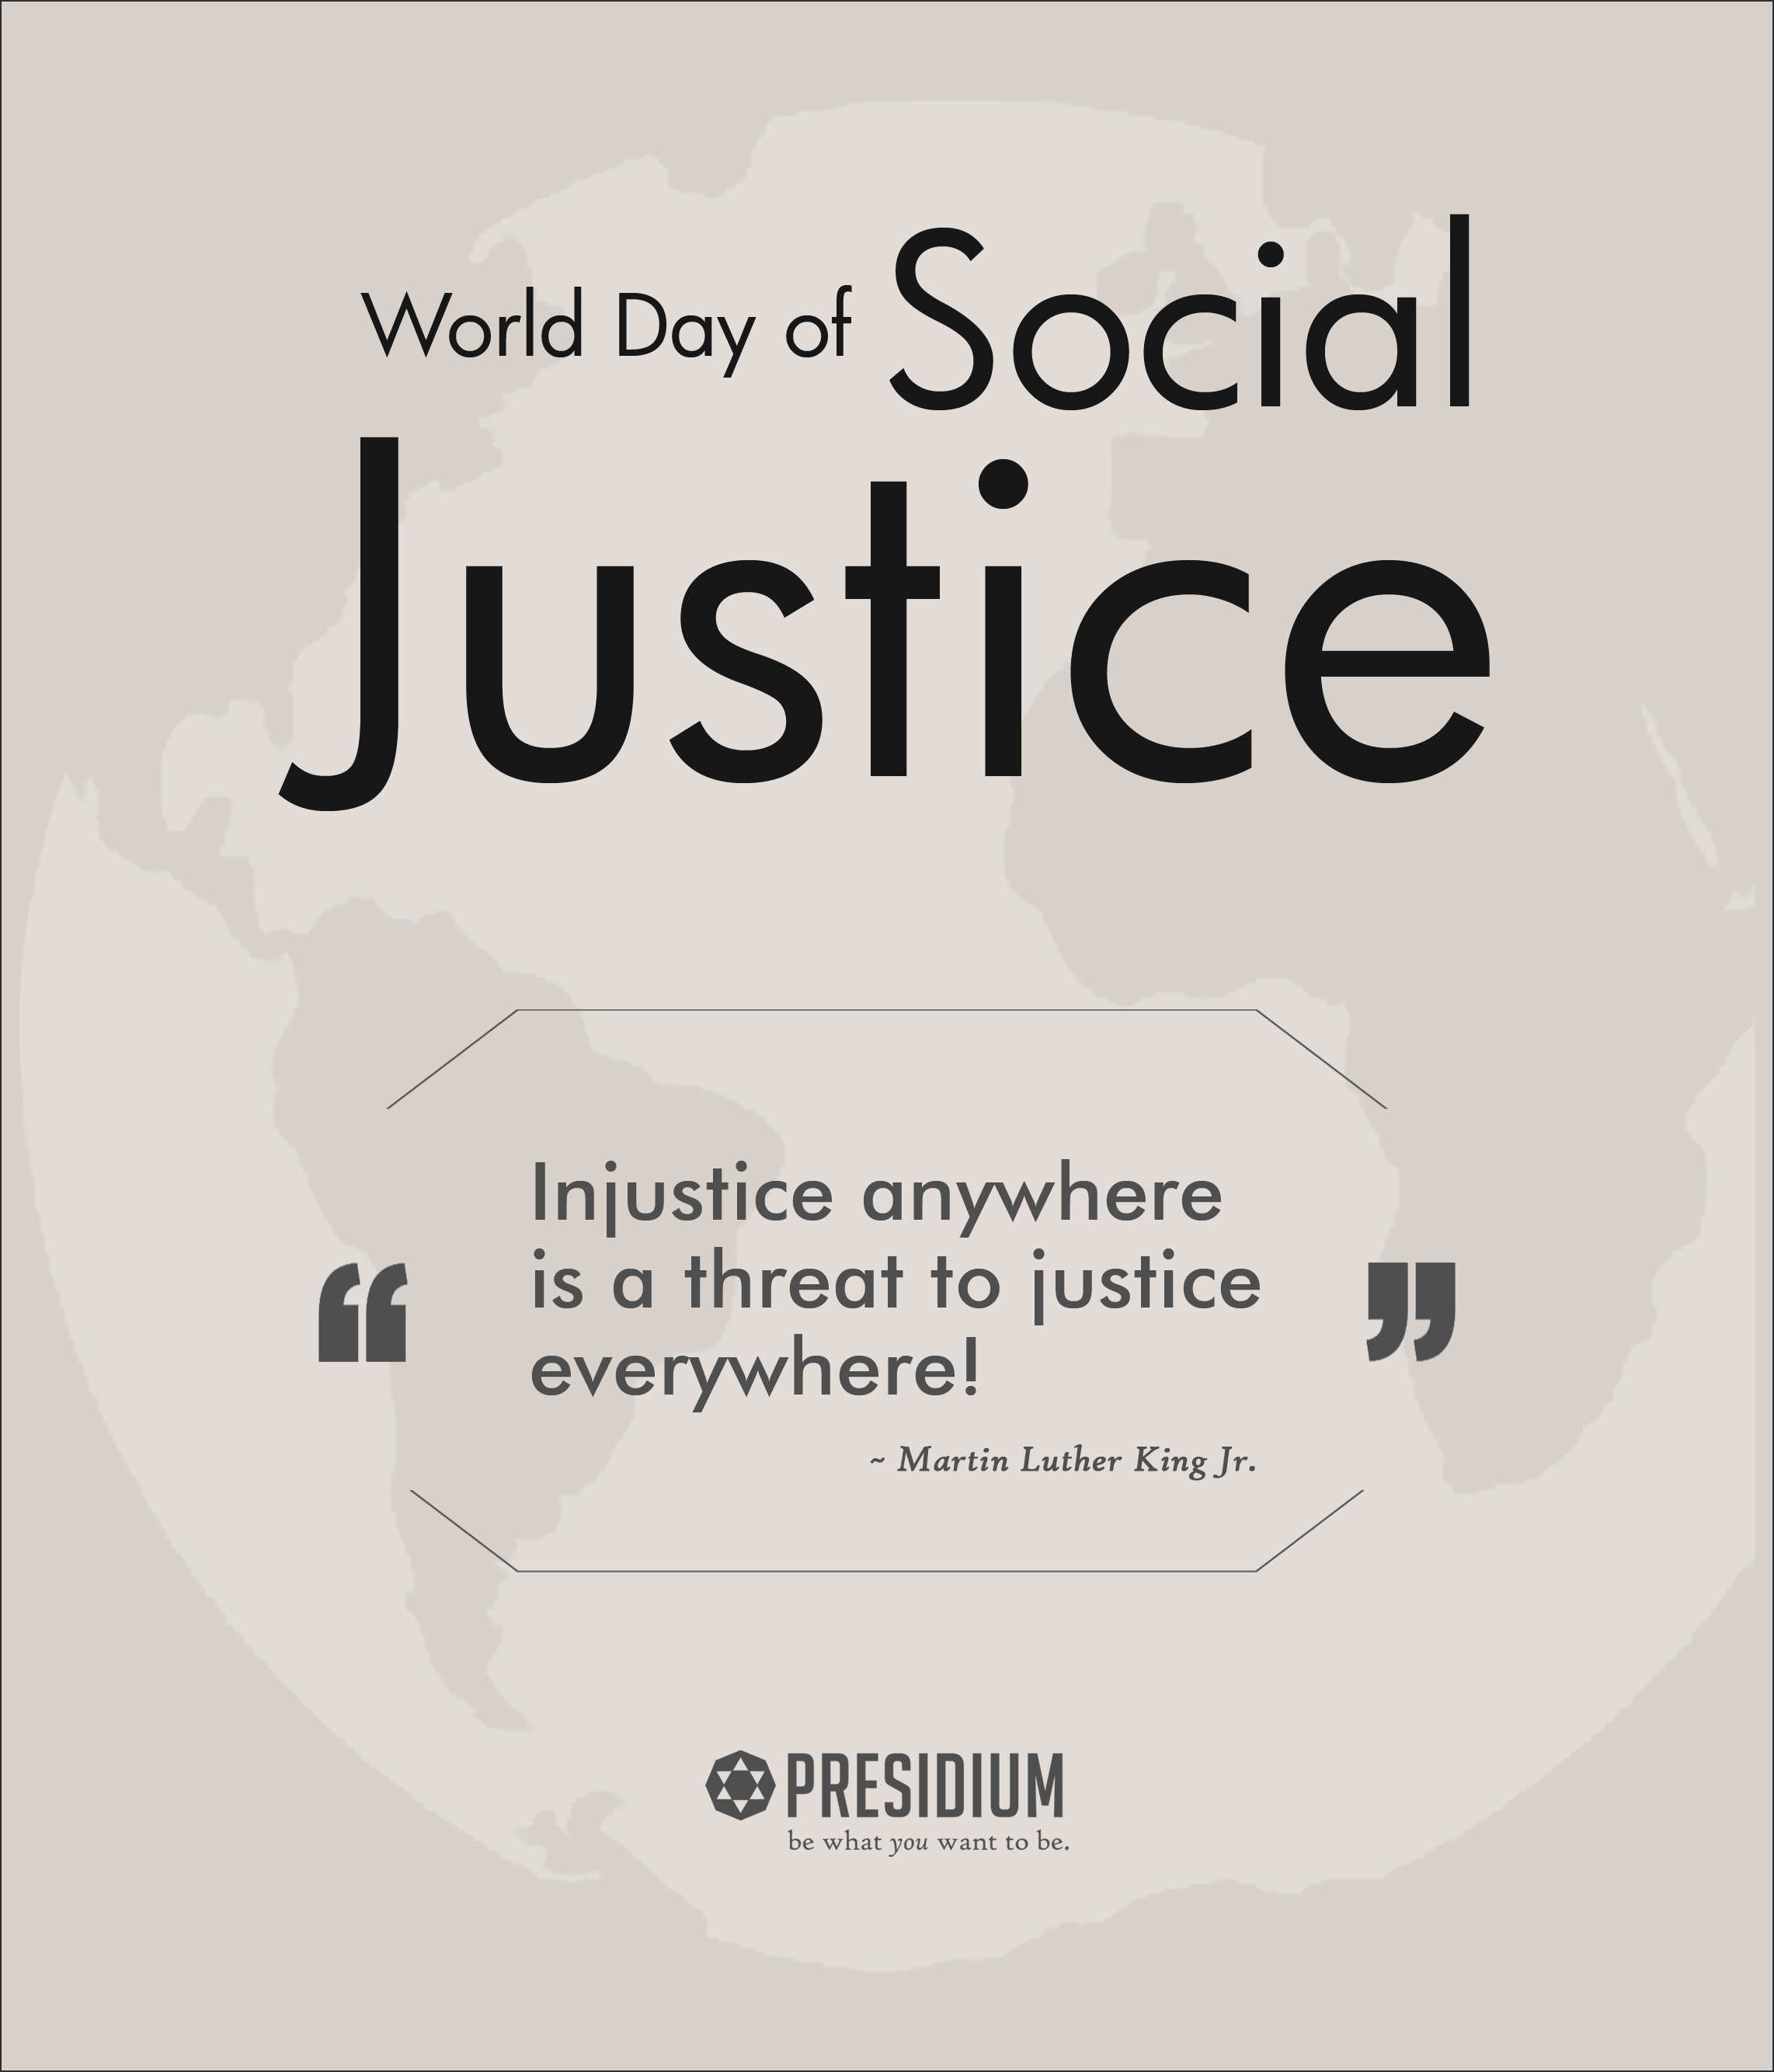 PRESIDIUM STANDS FOR ONENESS ON WORLD DAY OF SOCIAL JUSTICE